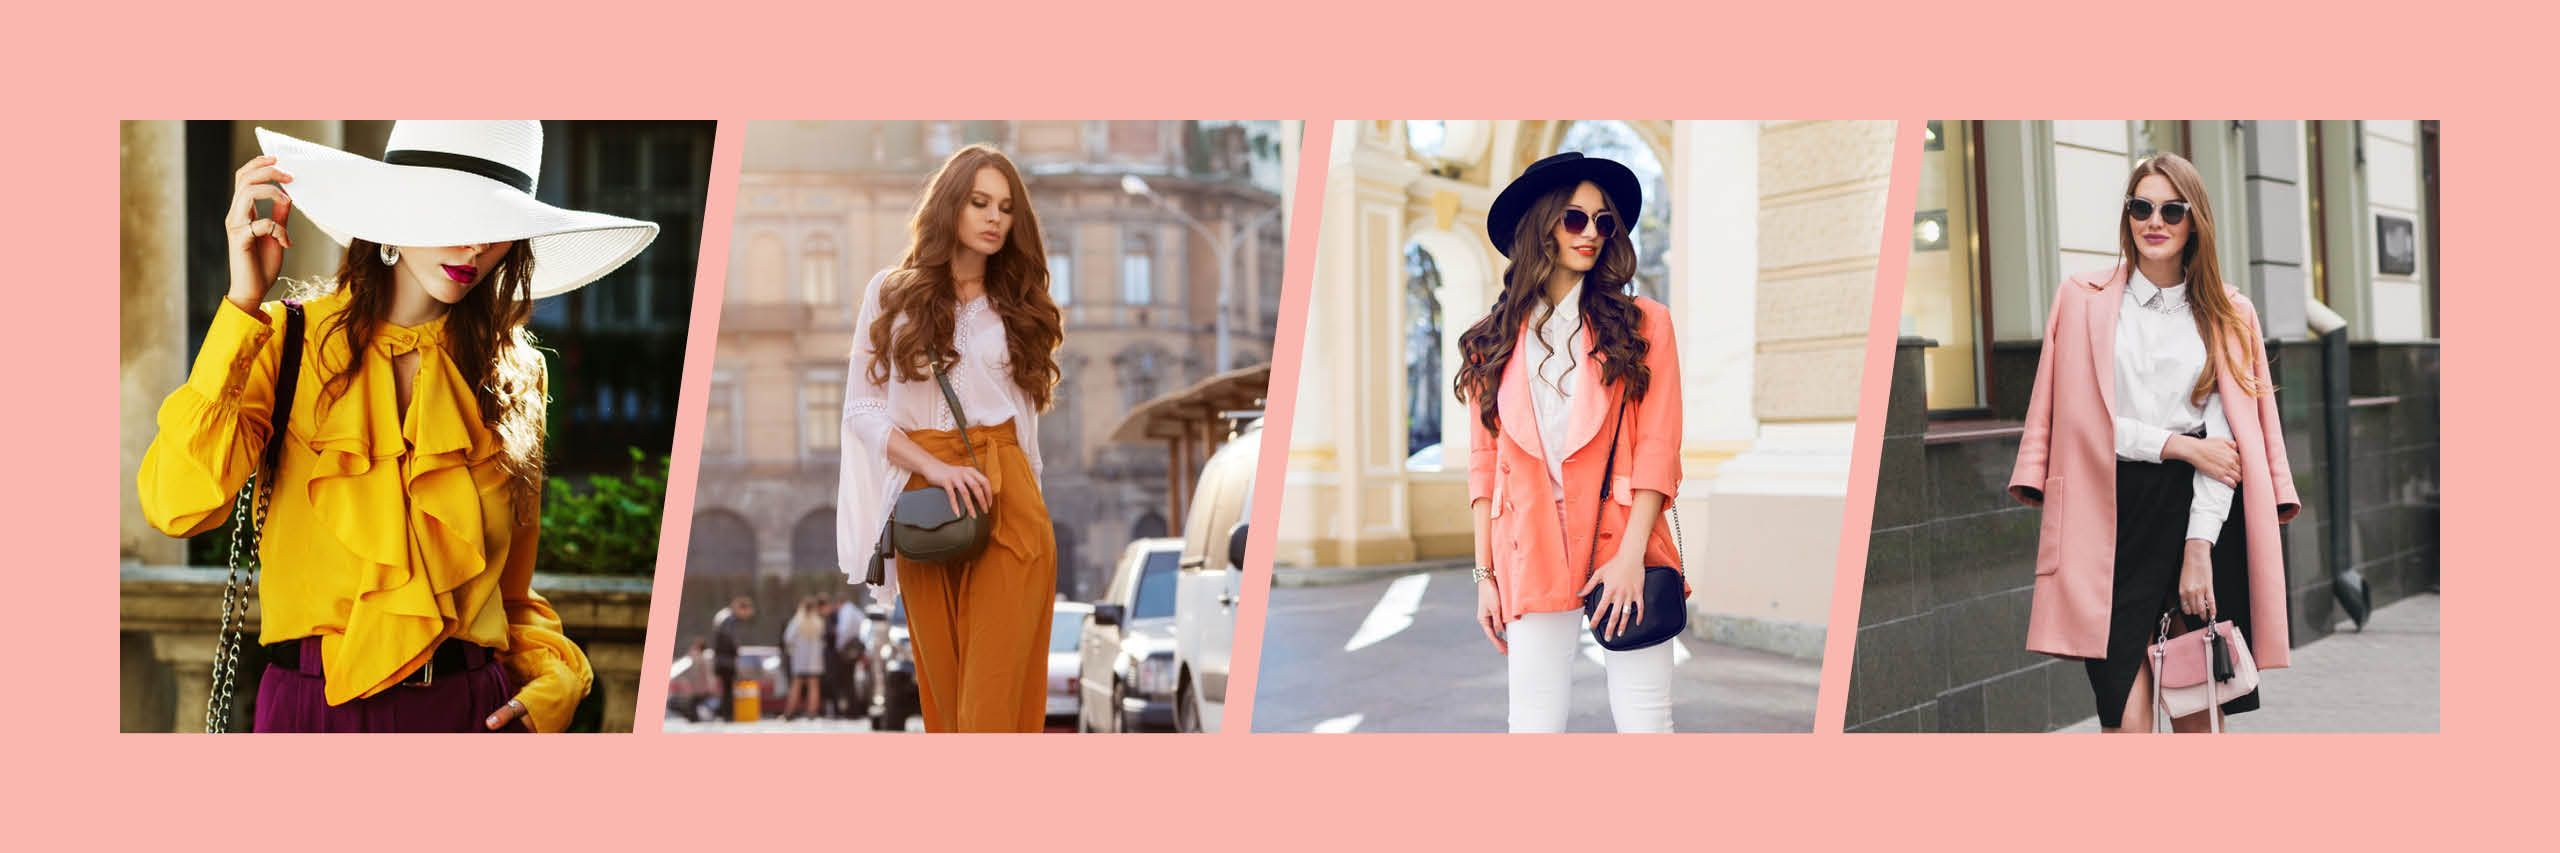 98d185a91126b2 Stylaholic - Your Stylefinder